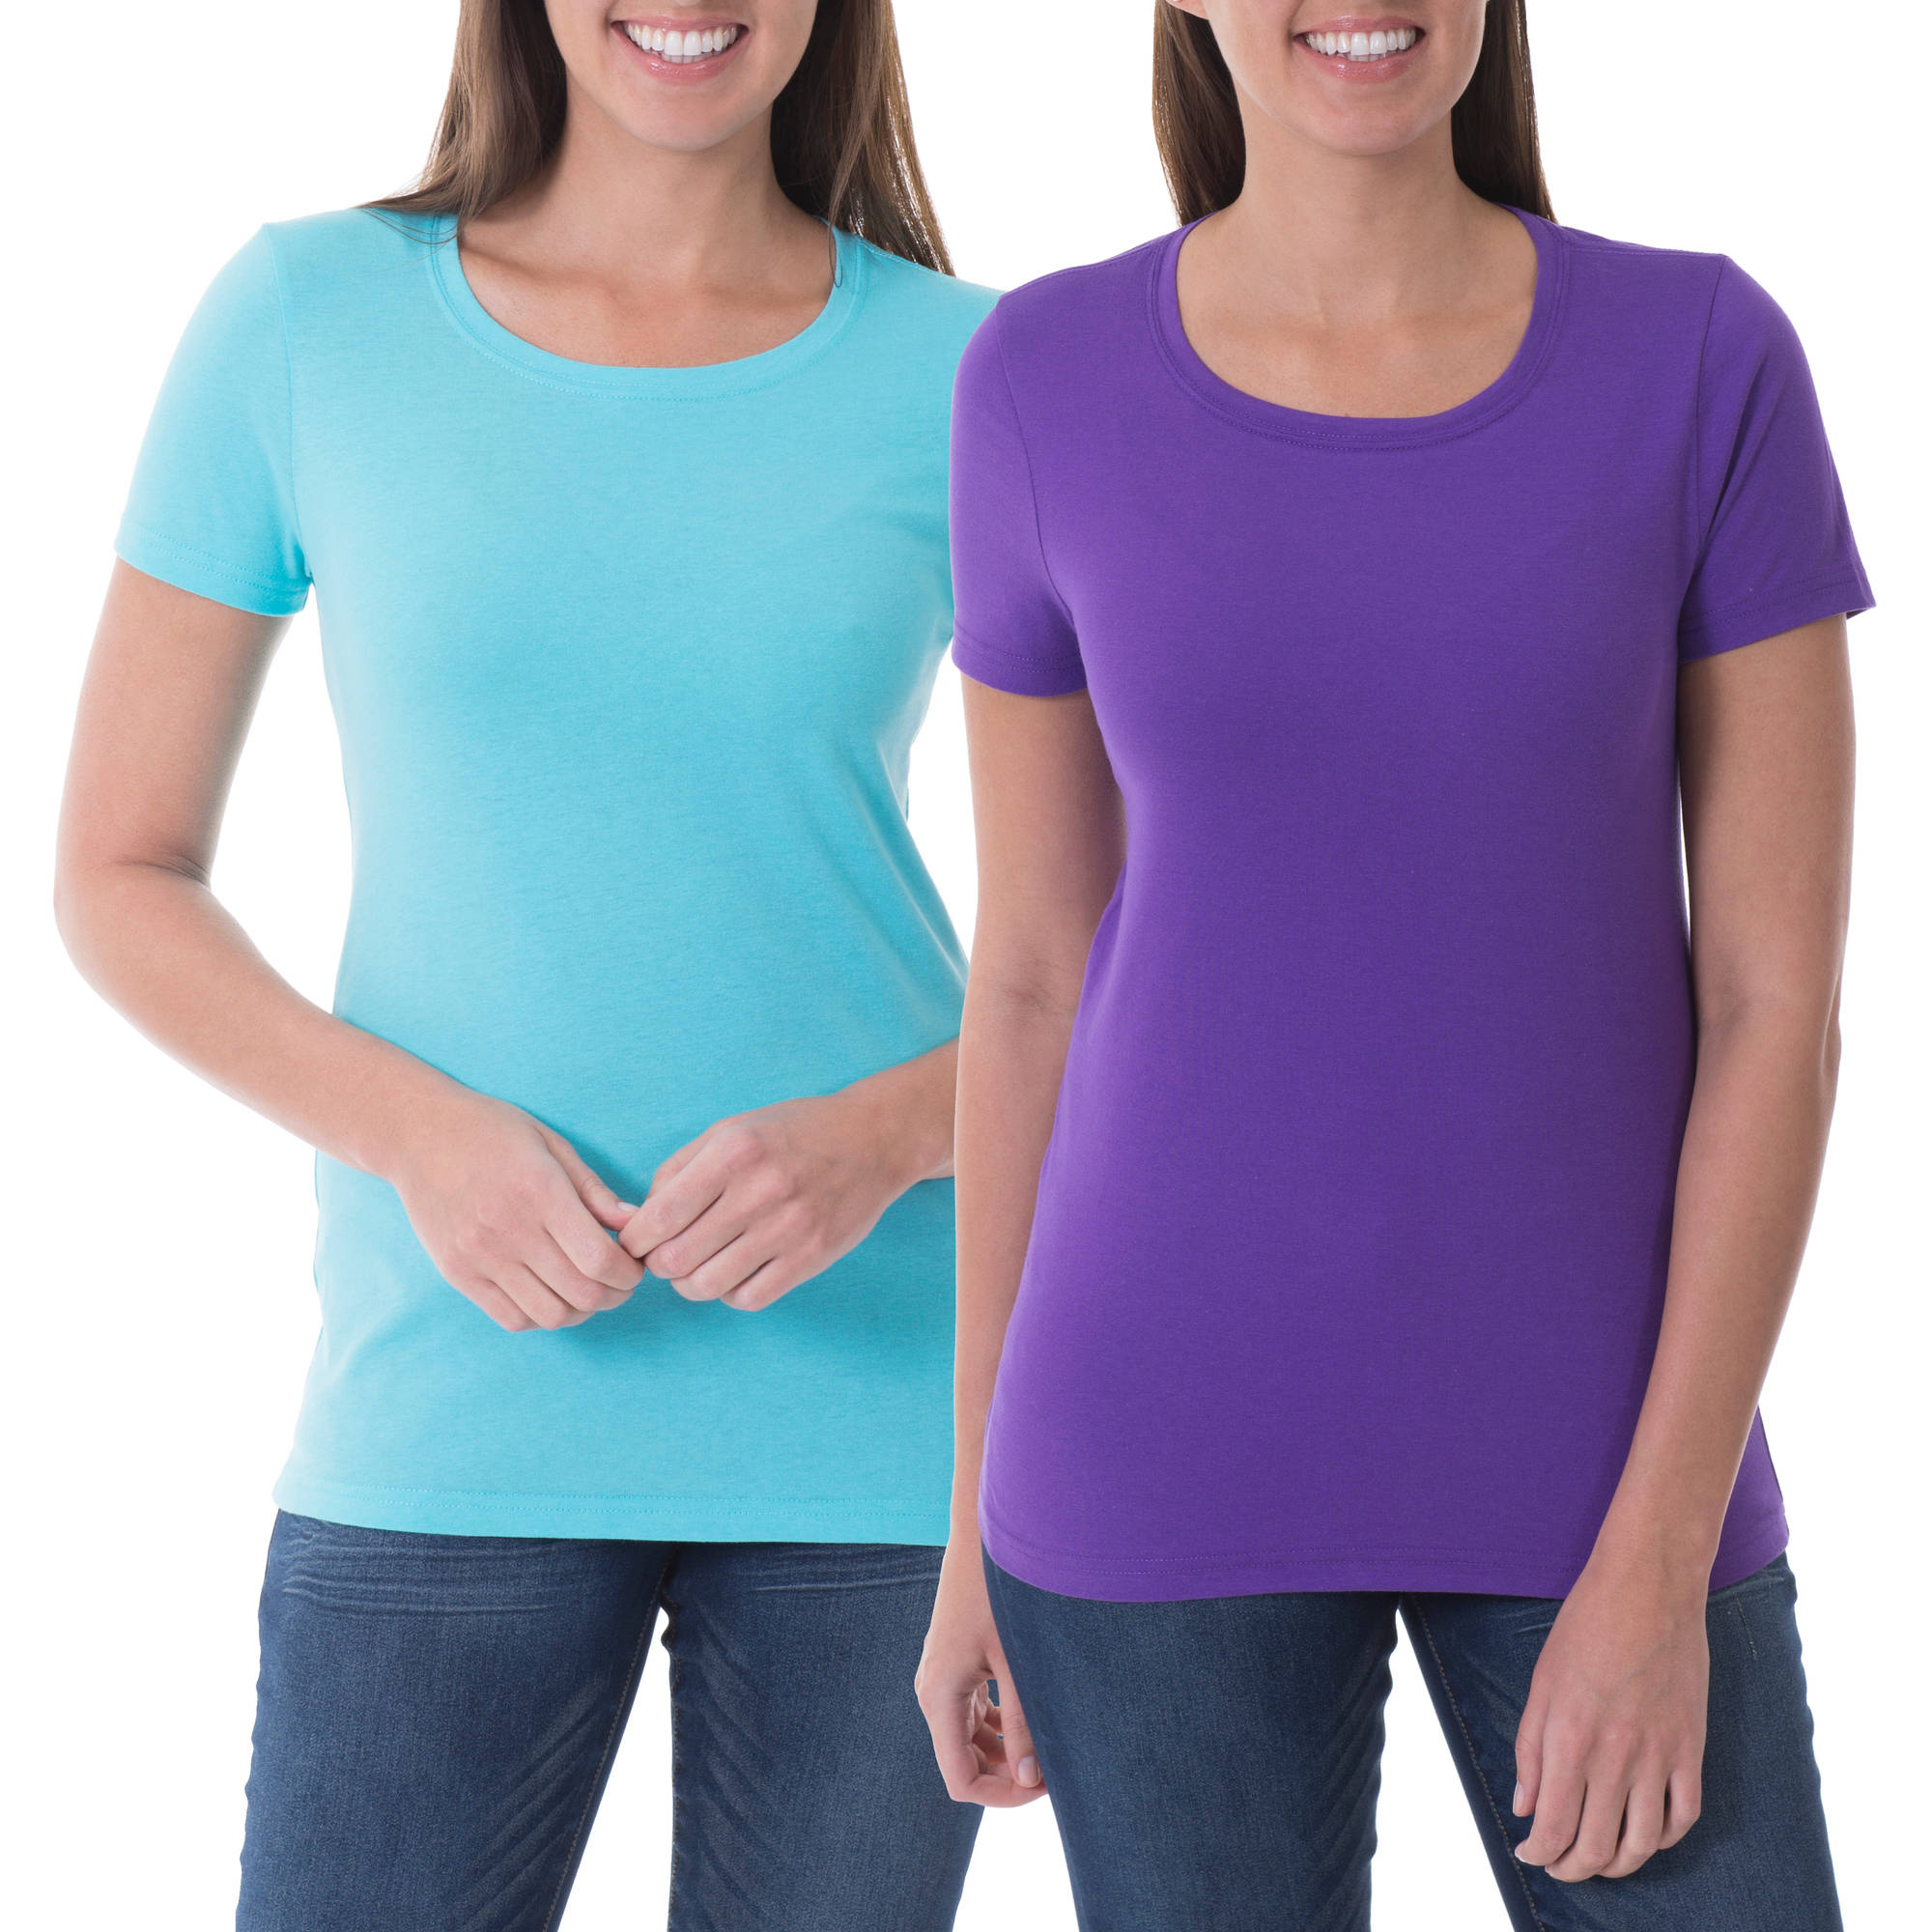 Faded Glory Women's Short Sleeve Crew Neck T-Shirt. 2 Pack Value Combo